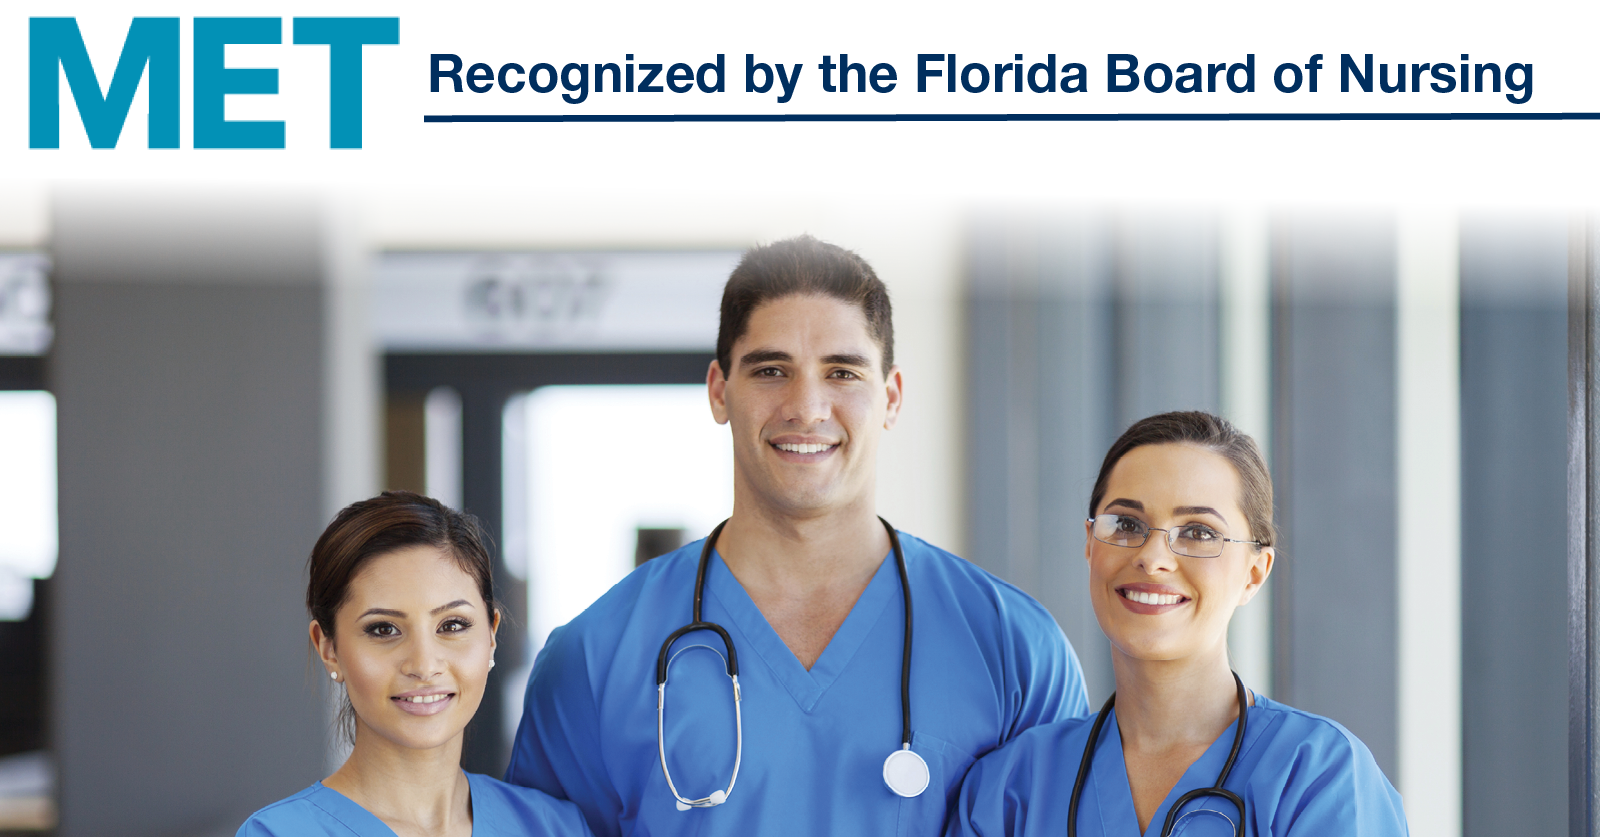 MET Recognized by the Florida Board of Nursing